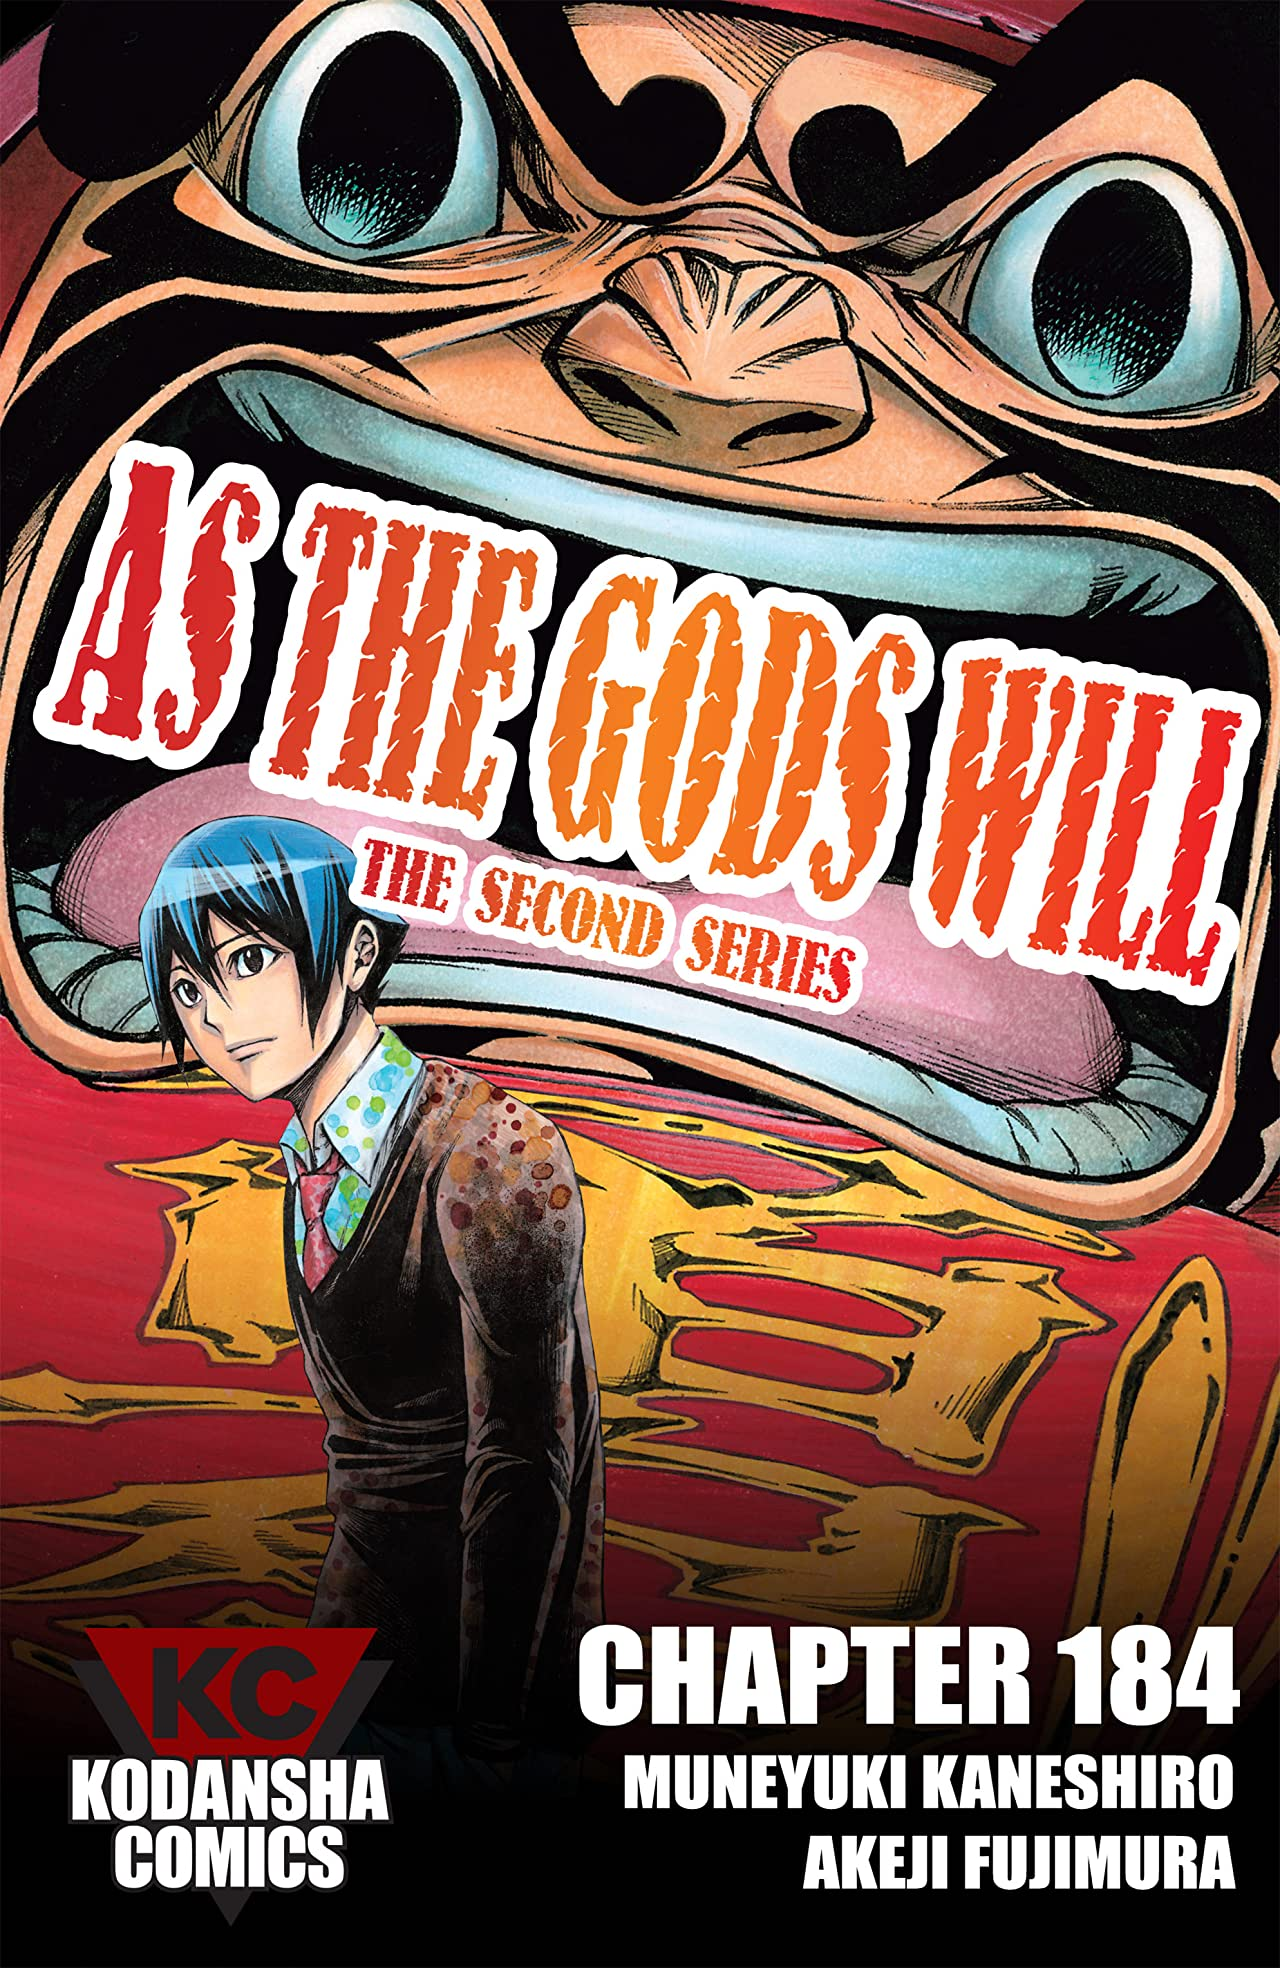 As The Gods Will: The Second Series #184